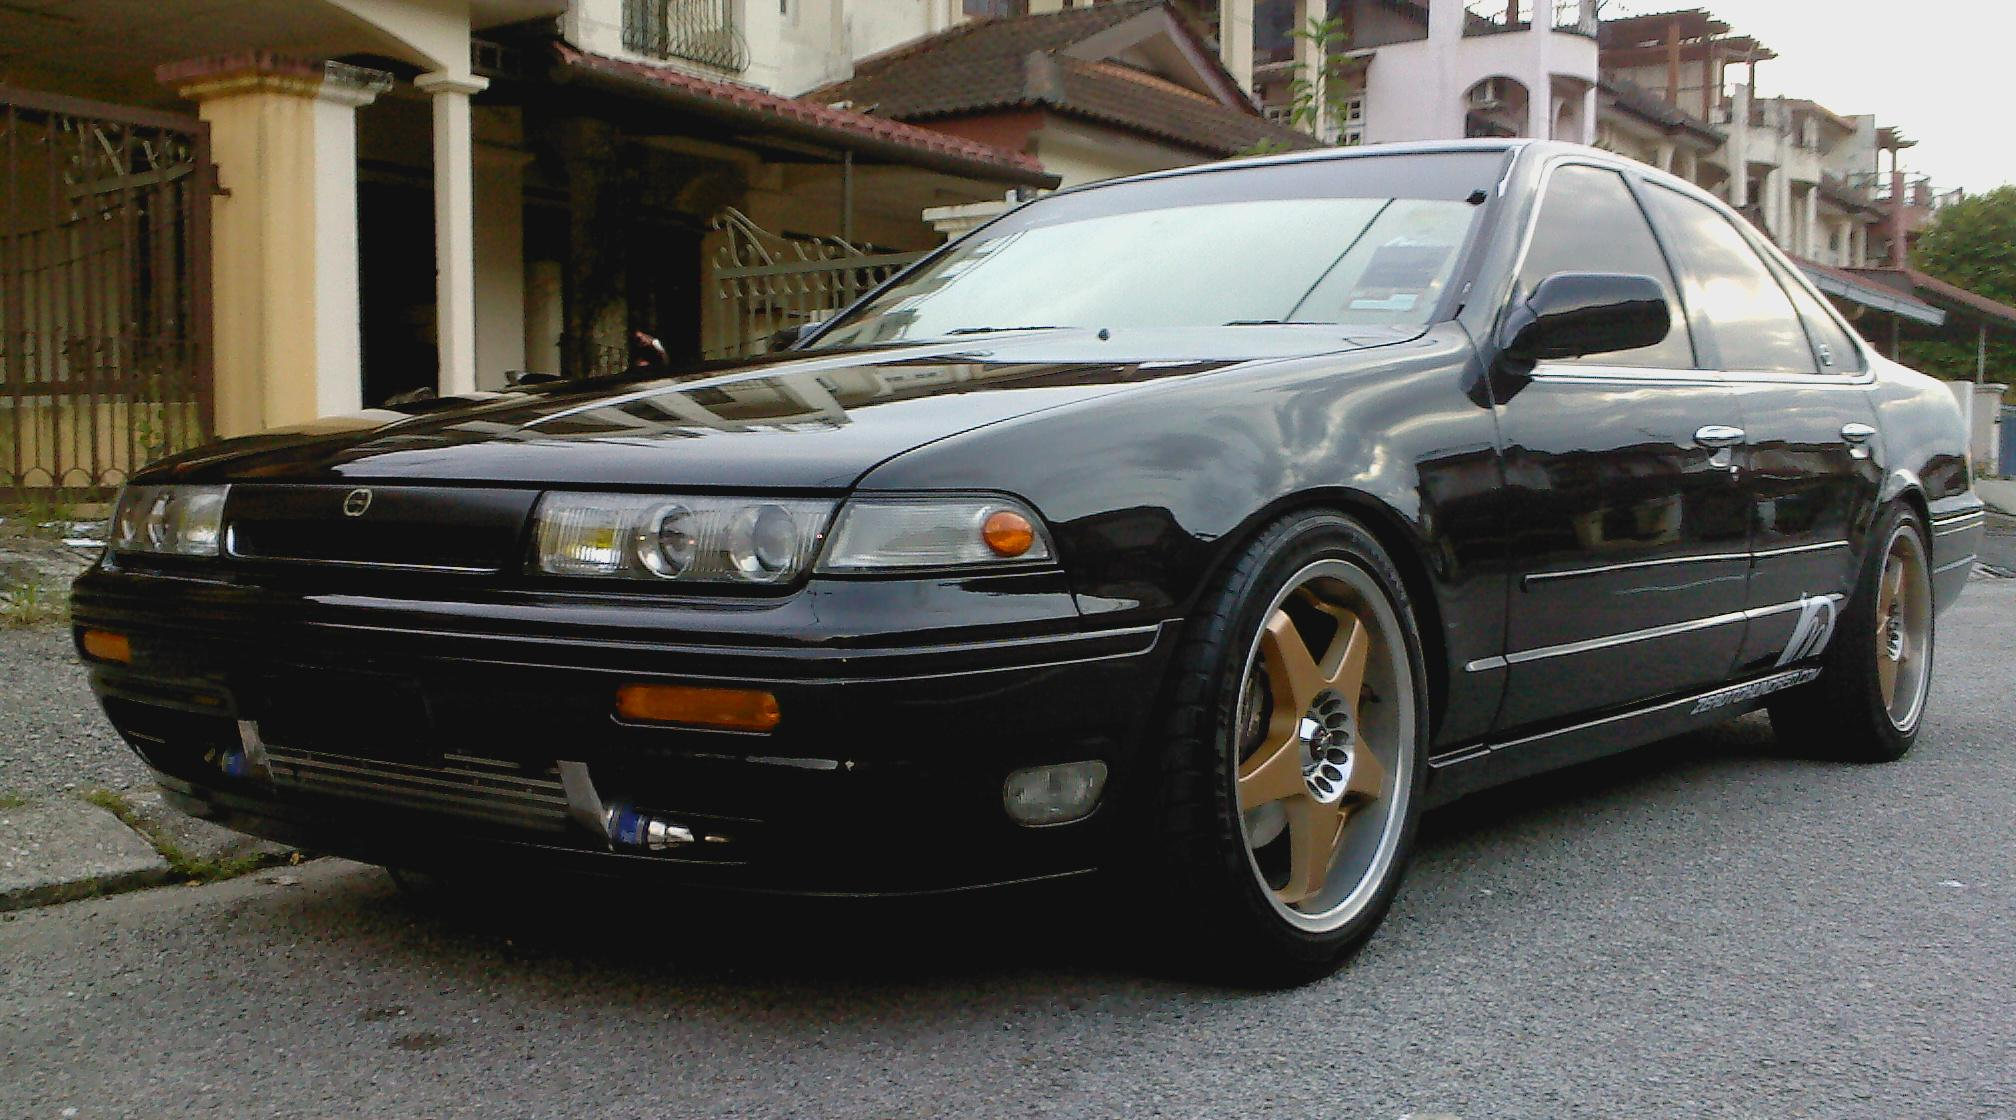 Nissan cefiro photo - 1